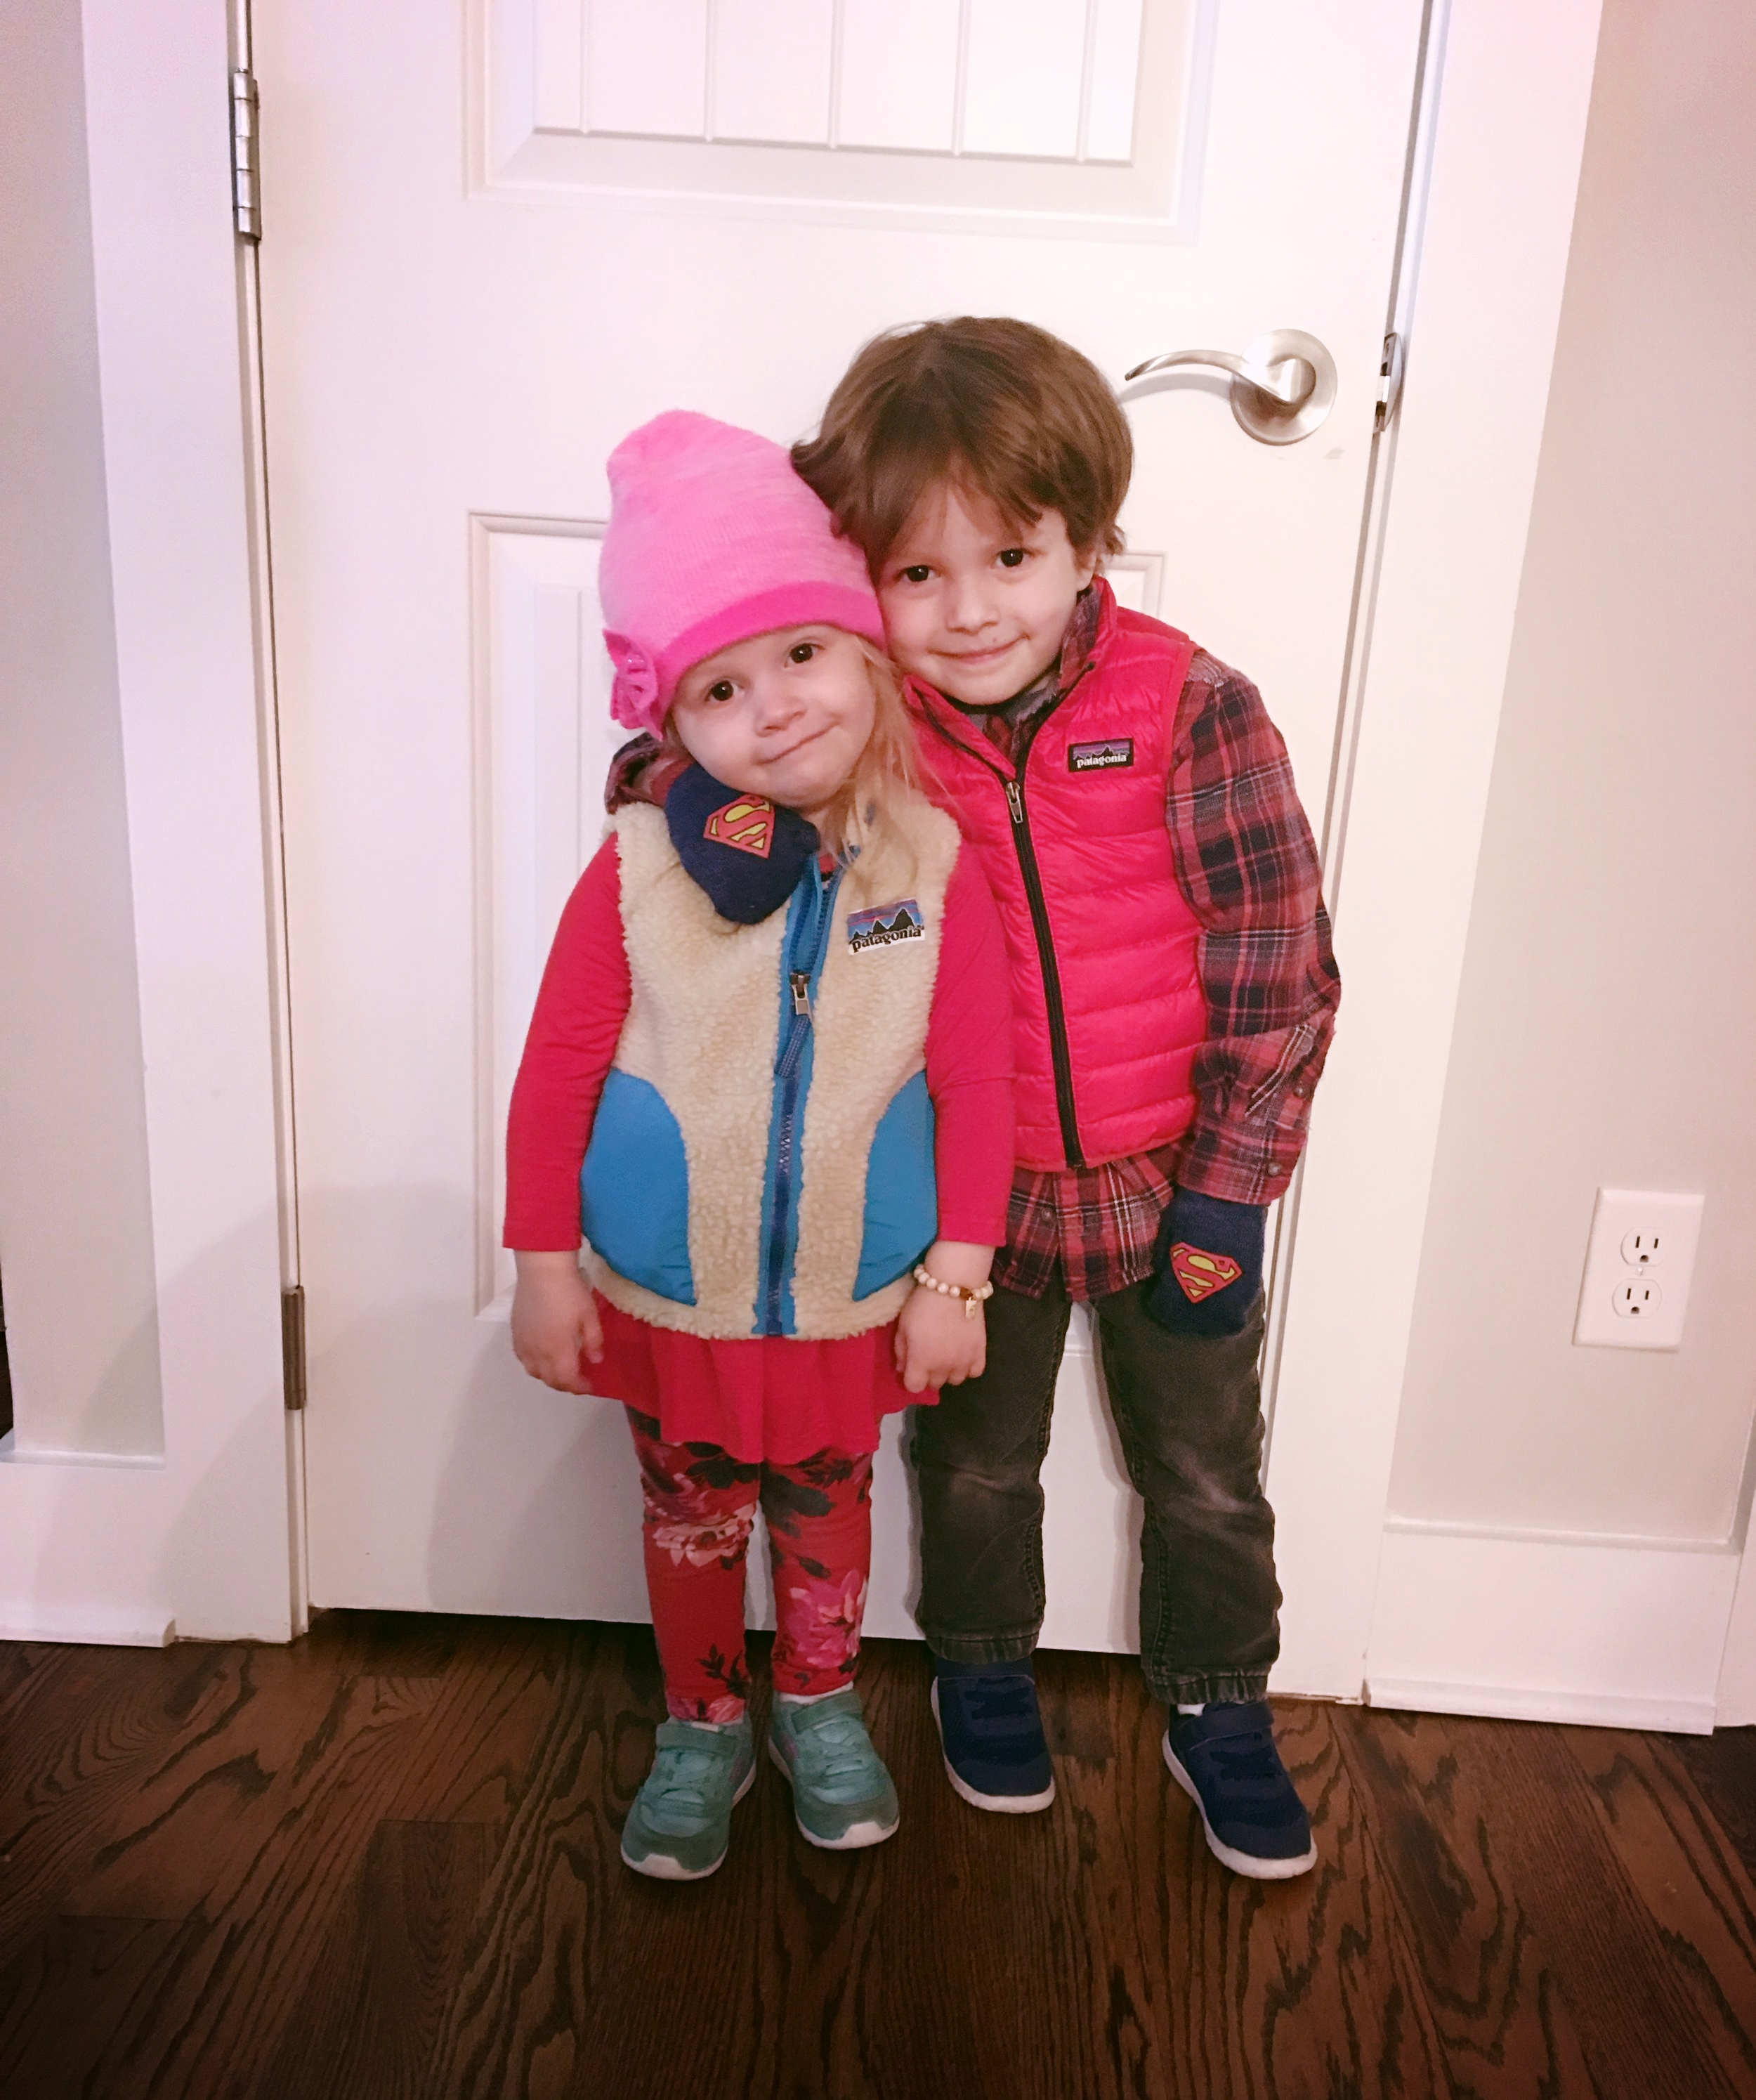 Our little ones ready for date night last year.